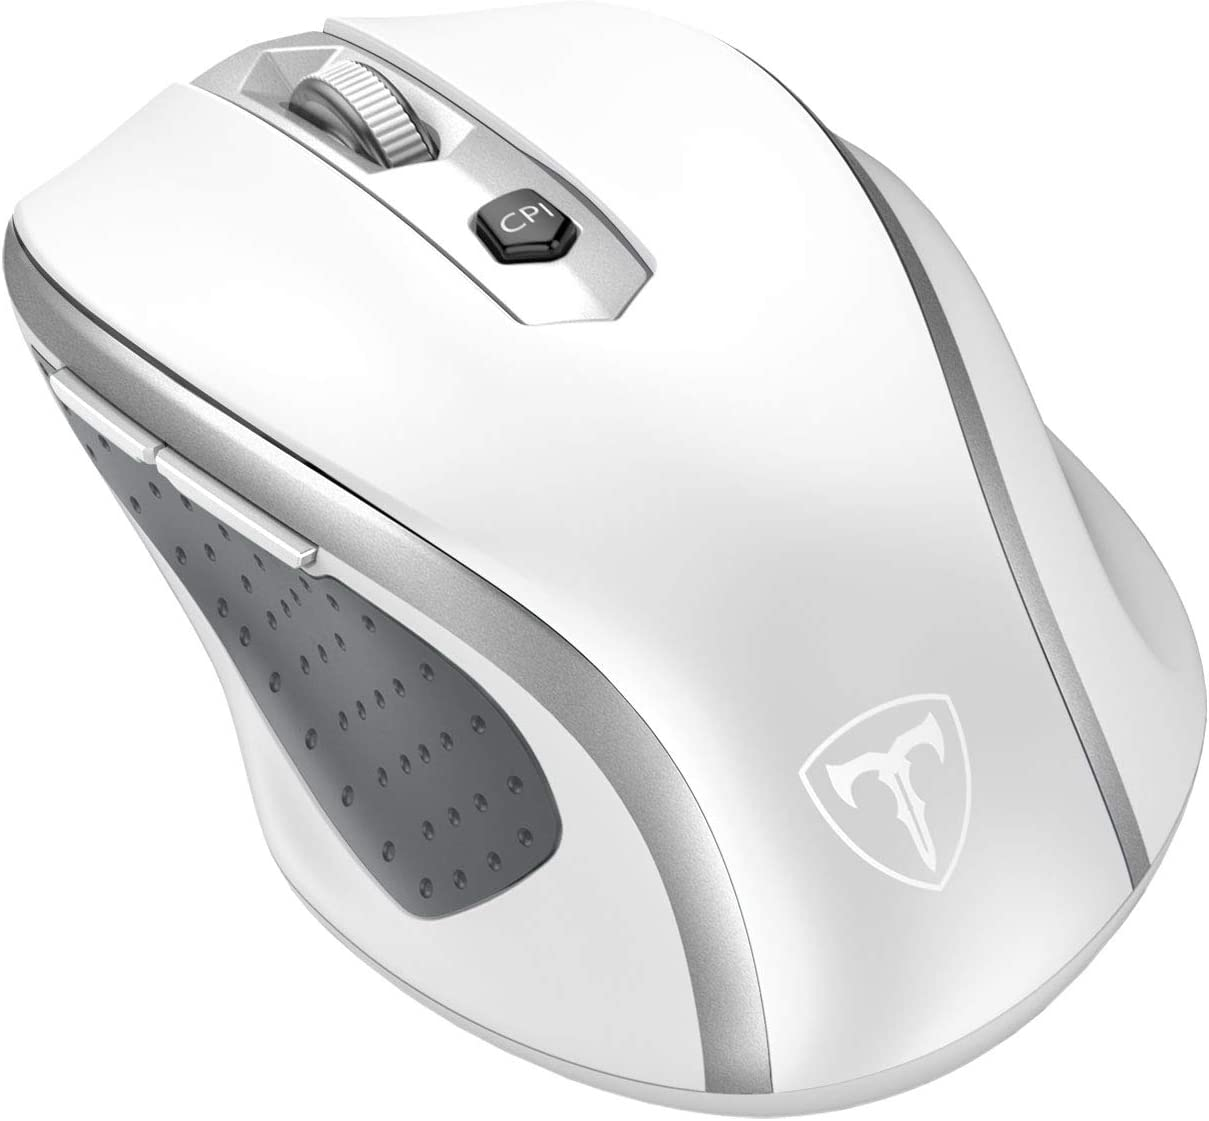 STPlus Letter Z Old English 2.4 GHz Wireless Mouse with Ergonomic Design and Nano Receiver